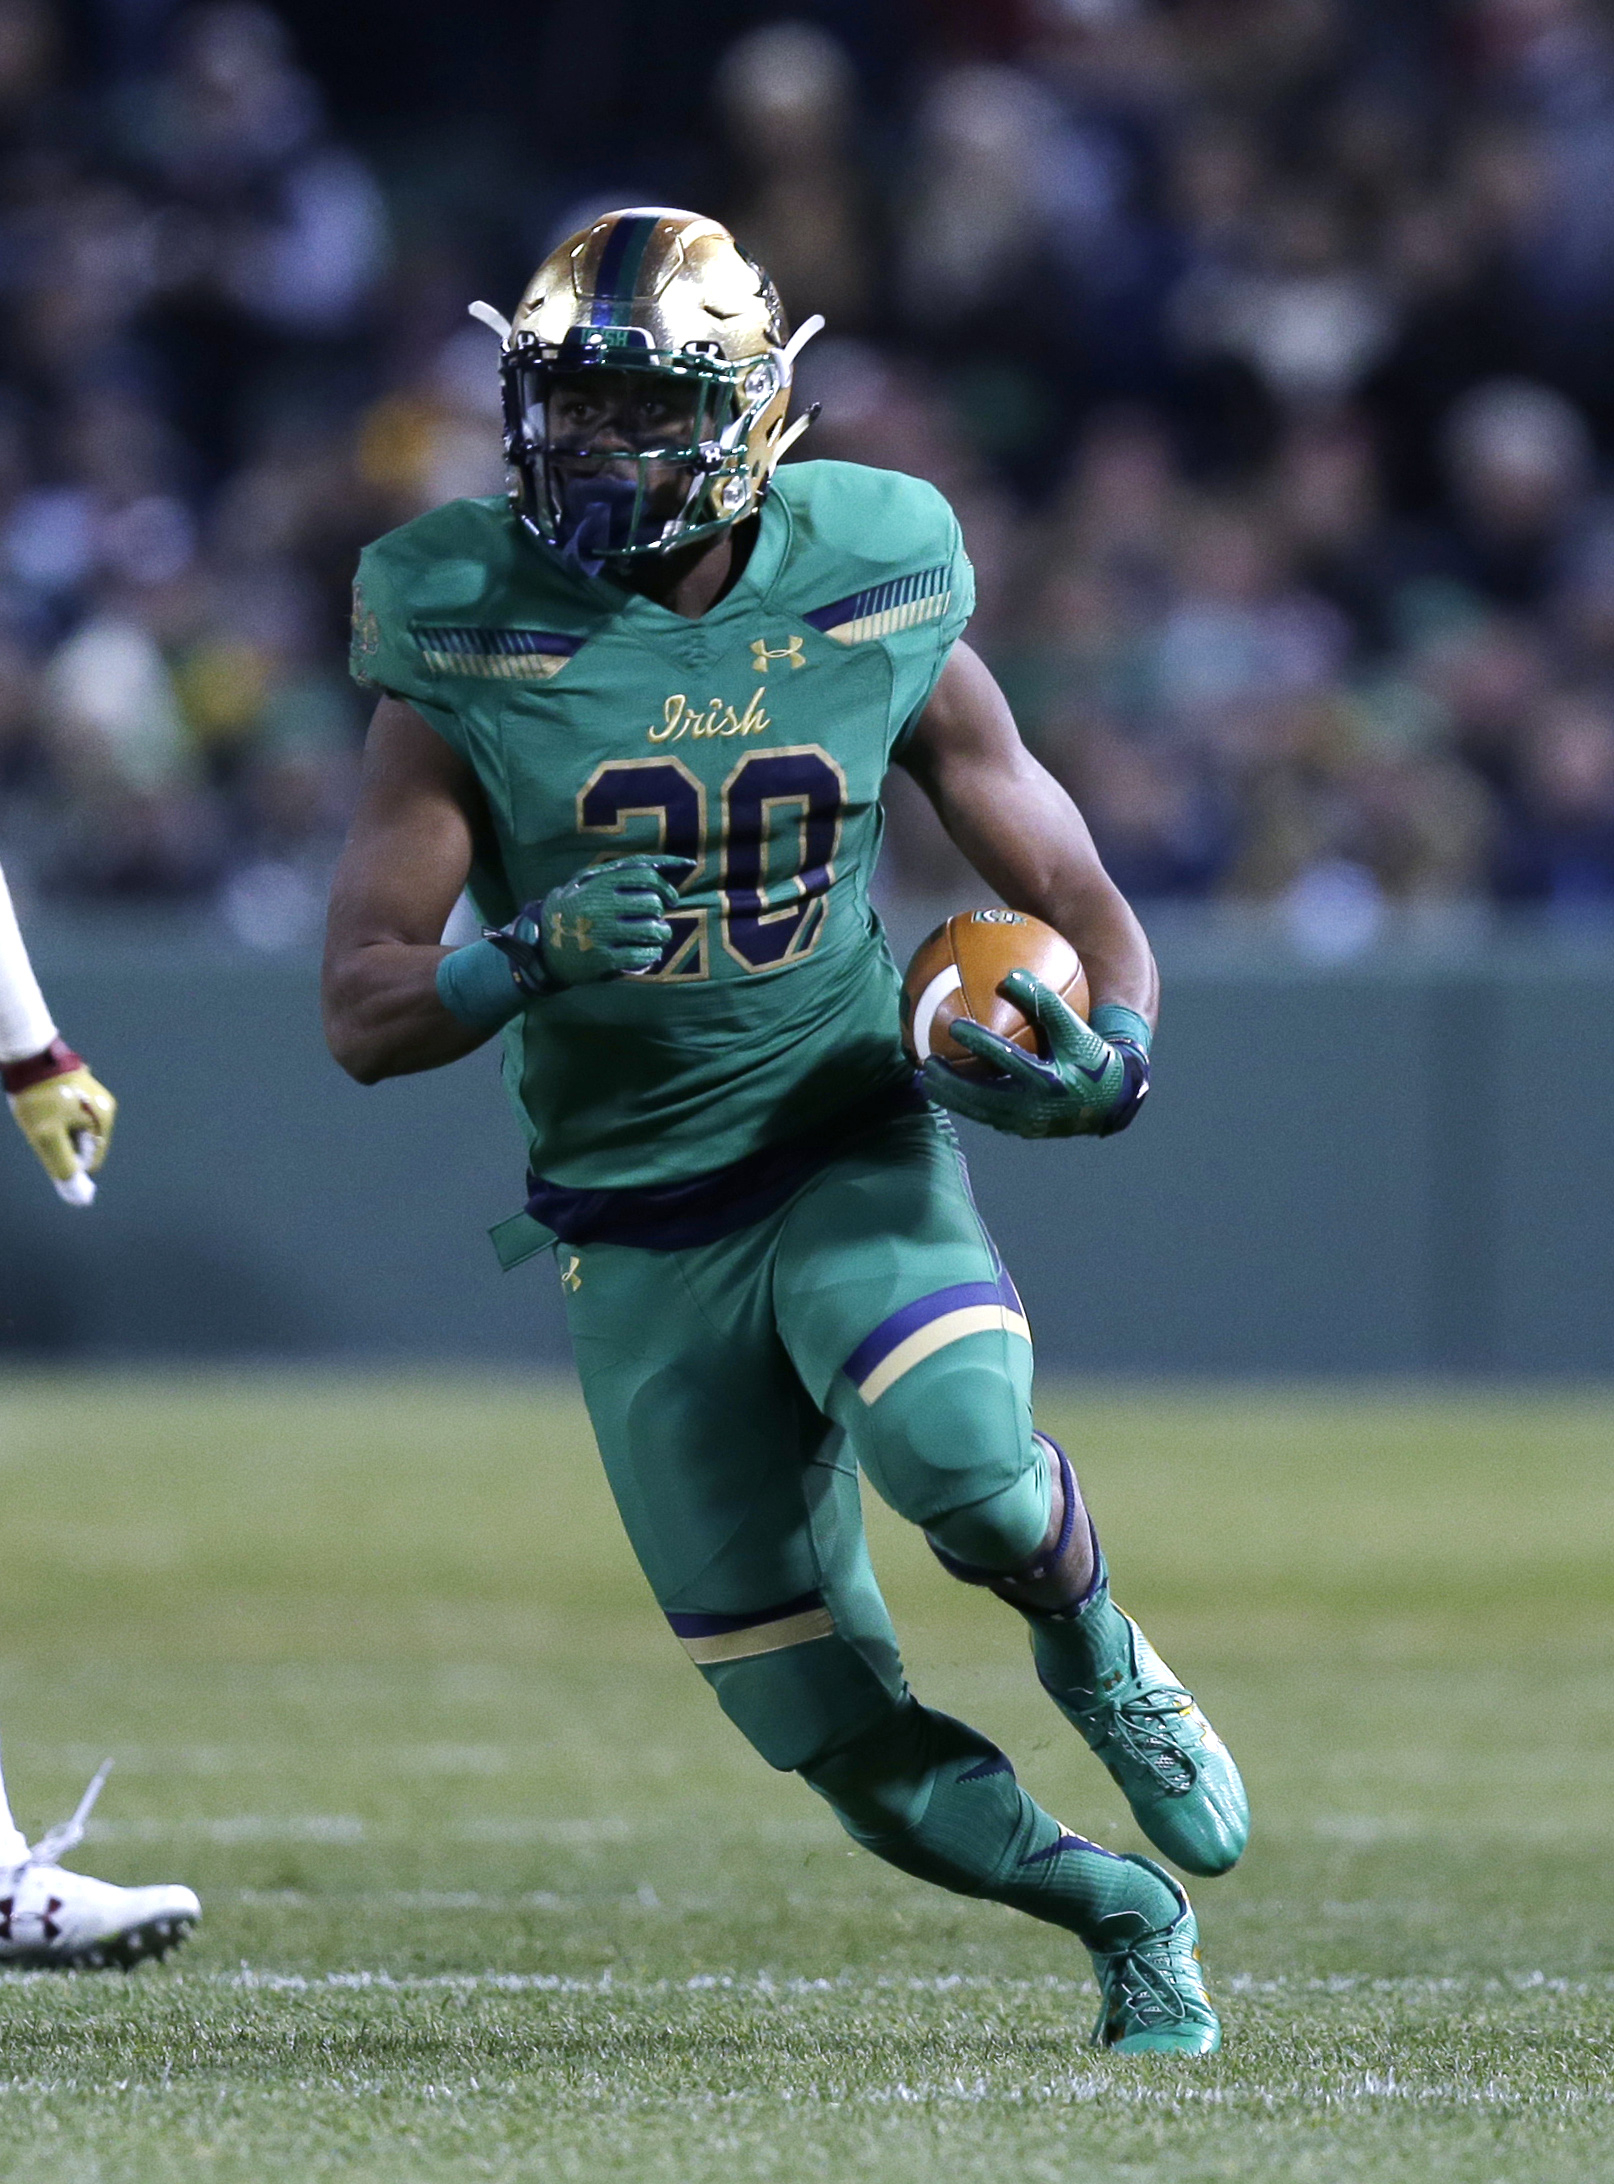 Notre Dame running back C.J. Prosise (20) during the first half of the Shamrock Series NCAA college football game at Fenway Park, home of the Boston Red Sox, in Boston Saturday, Nov. 21, 2015. (AP Photo/Charles Krupa)